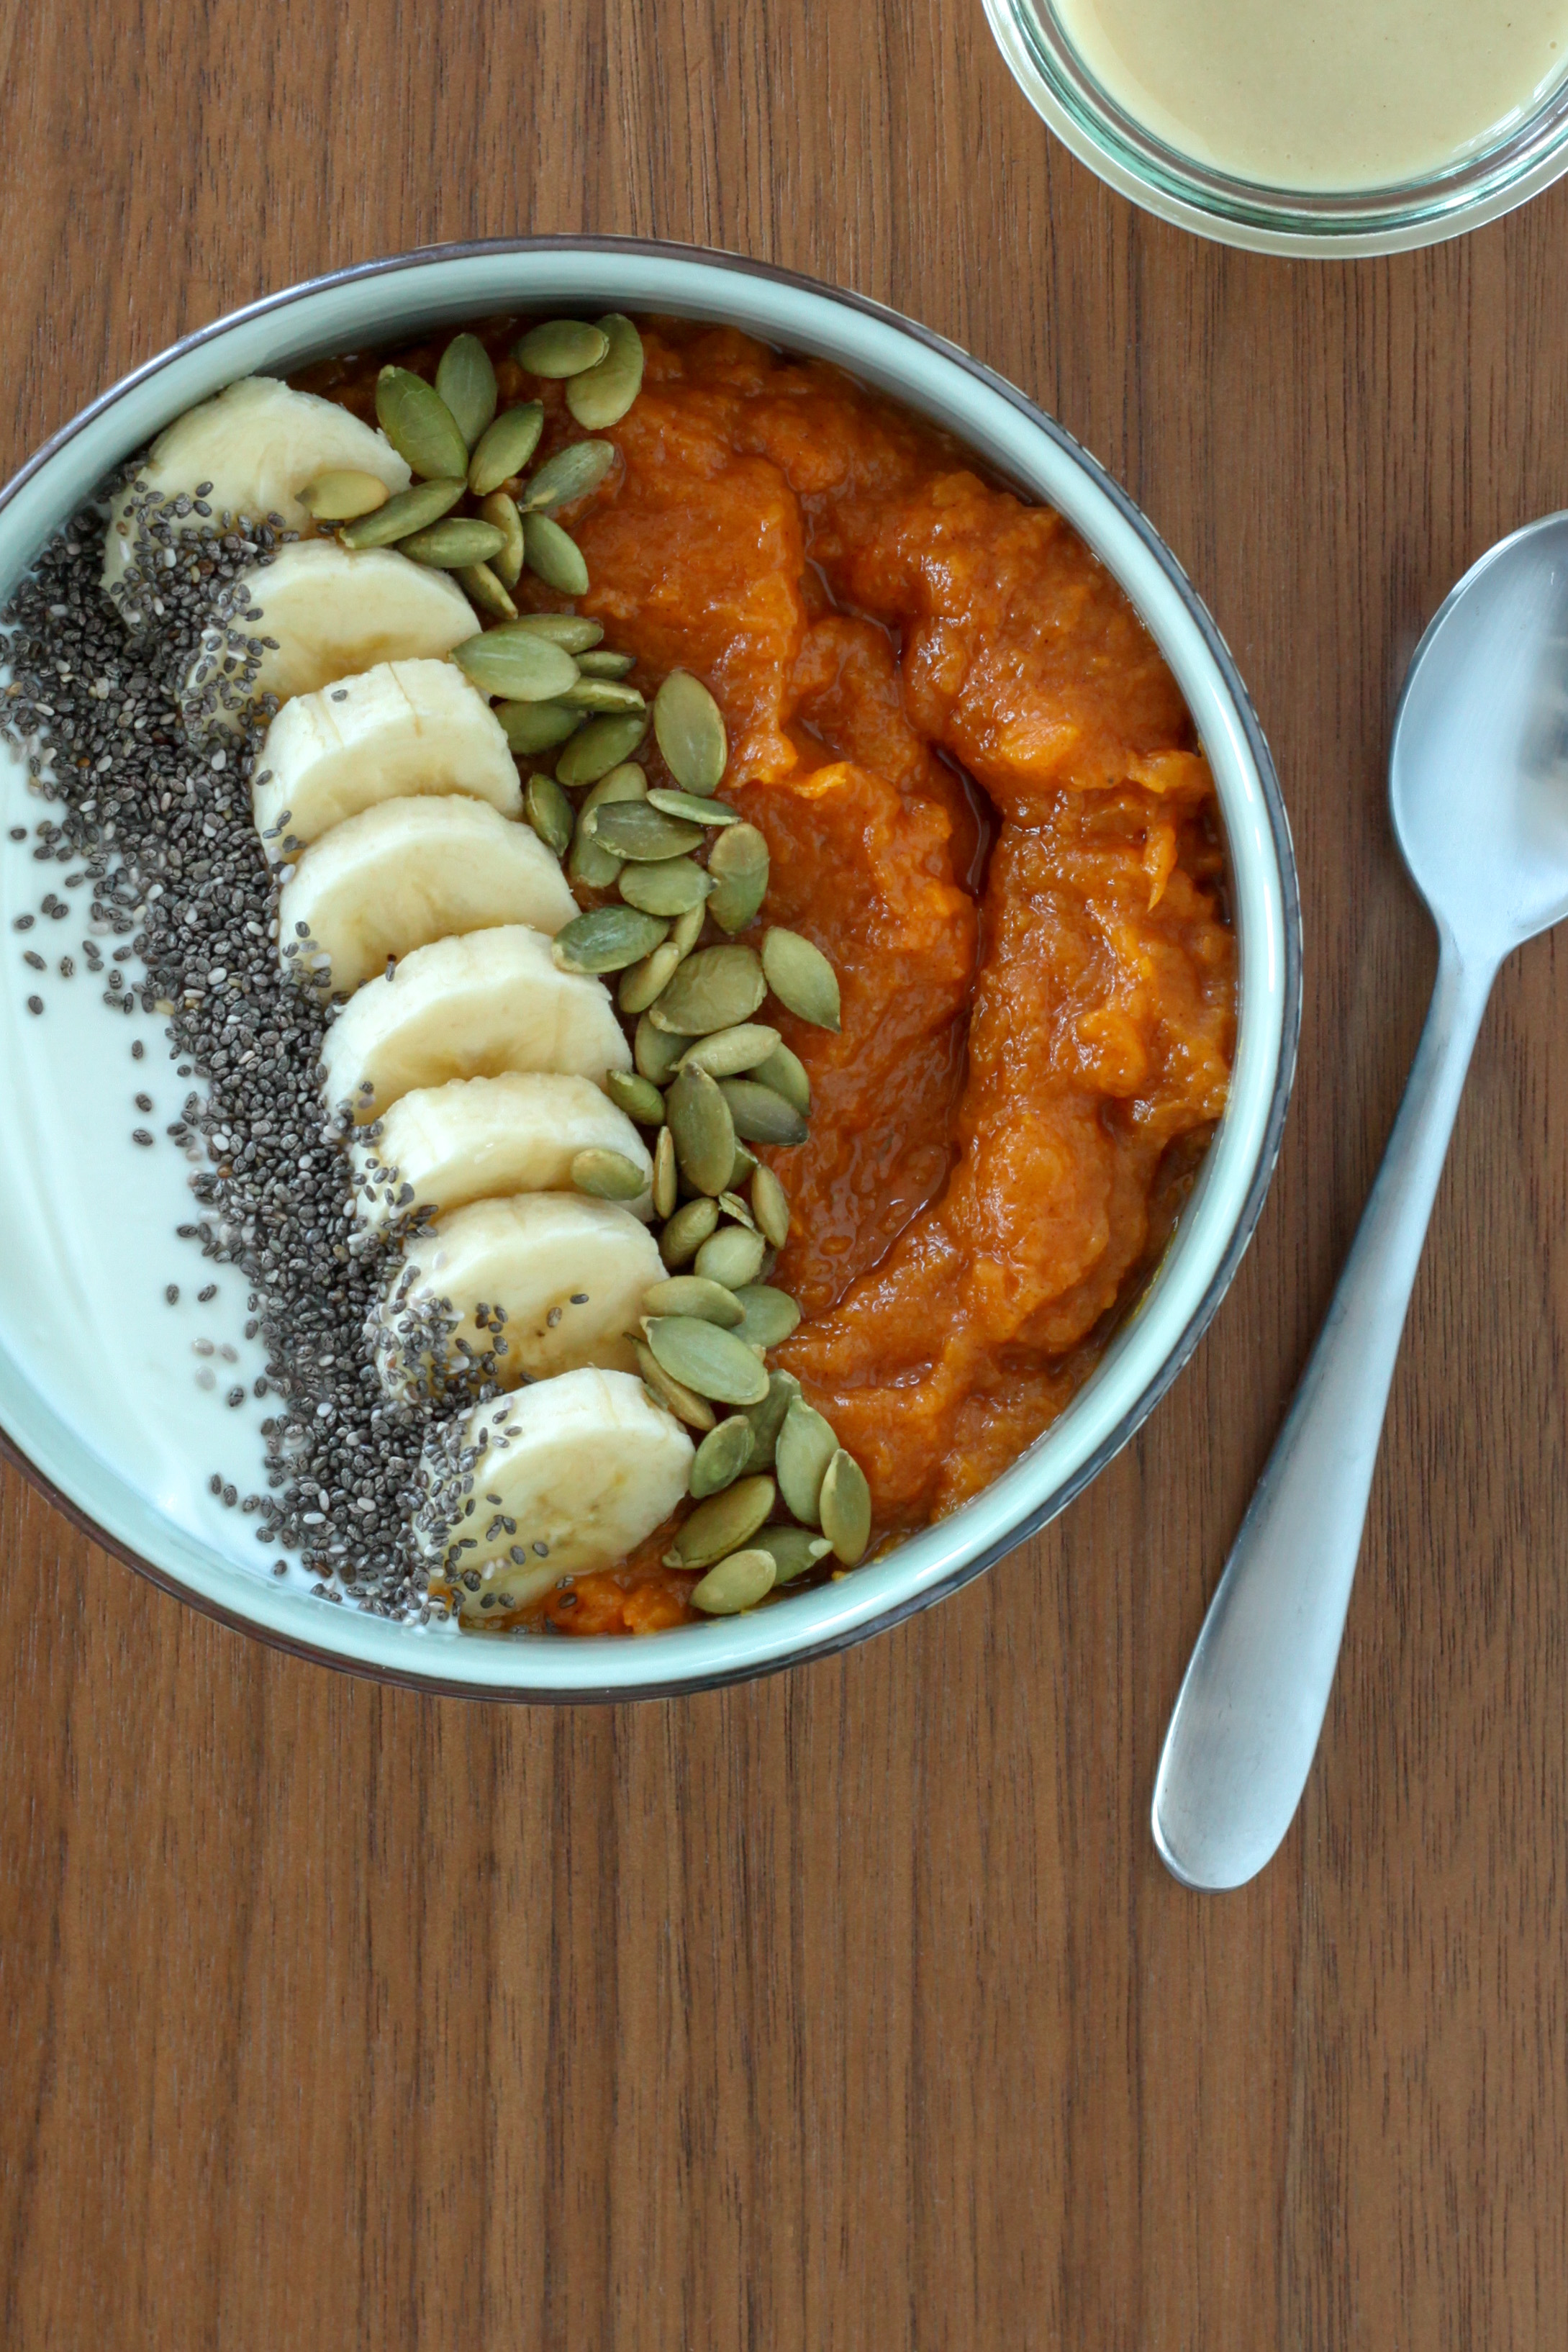 Sweet Potato Breakfast Bowl With Maple-Tahini Sauce (gluten-free, Whole30/paleo options) | amodestfeast.com | @amodestfeast #sweetpotatoes #healthybreakfast #whole30breakfast #paleobreakfast